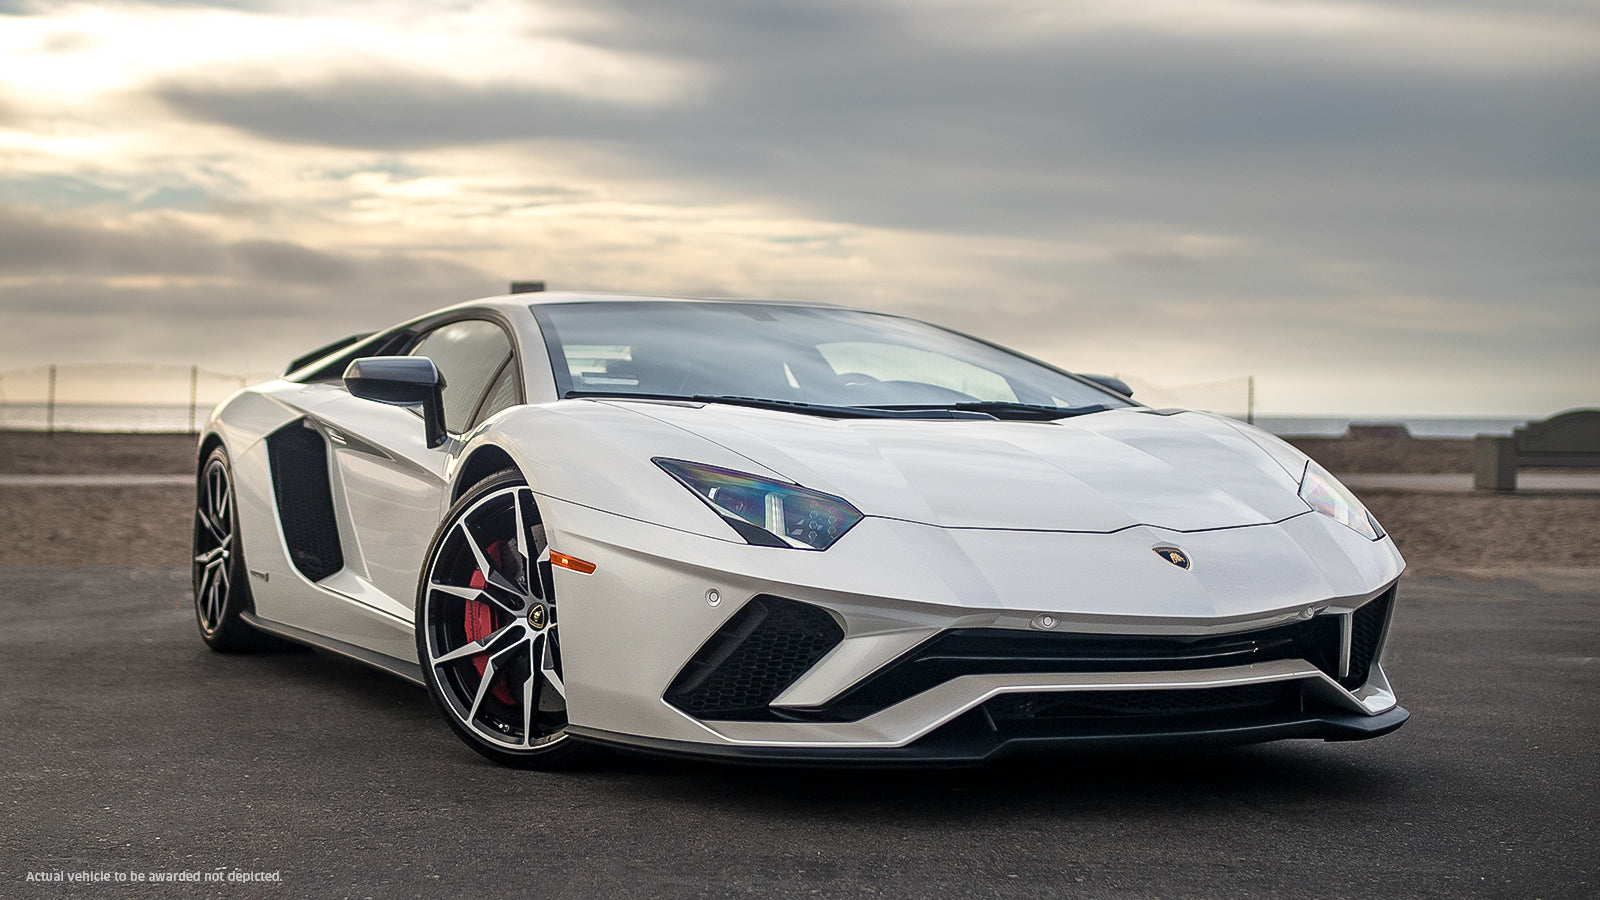 Win Your Very Own $400,000 Lamborghini Aventador S